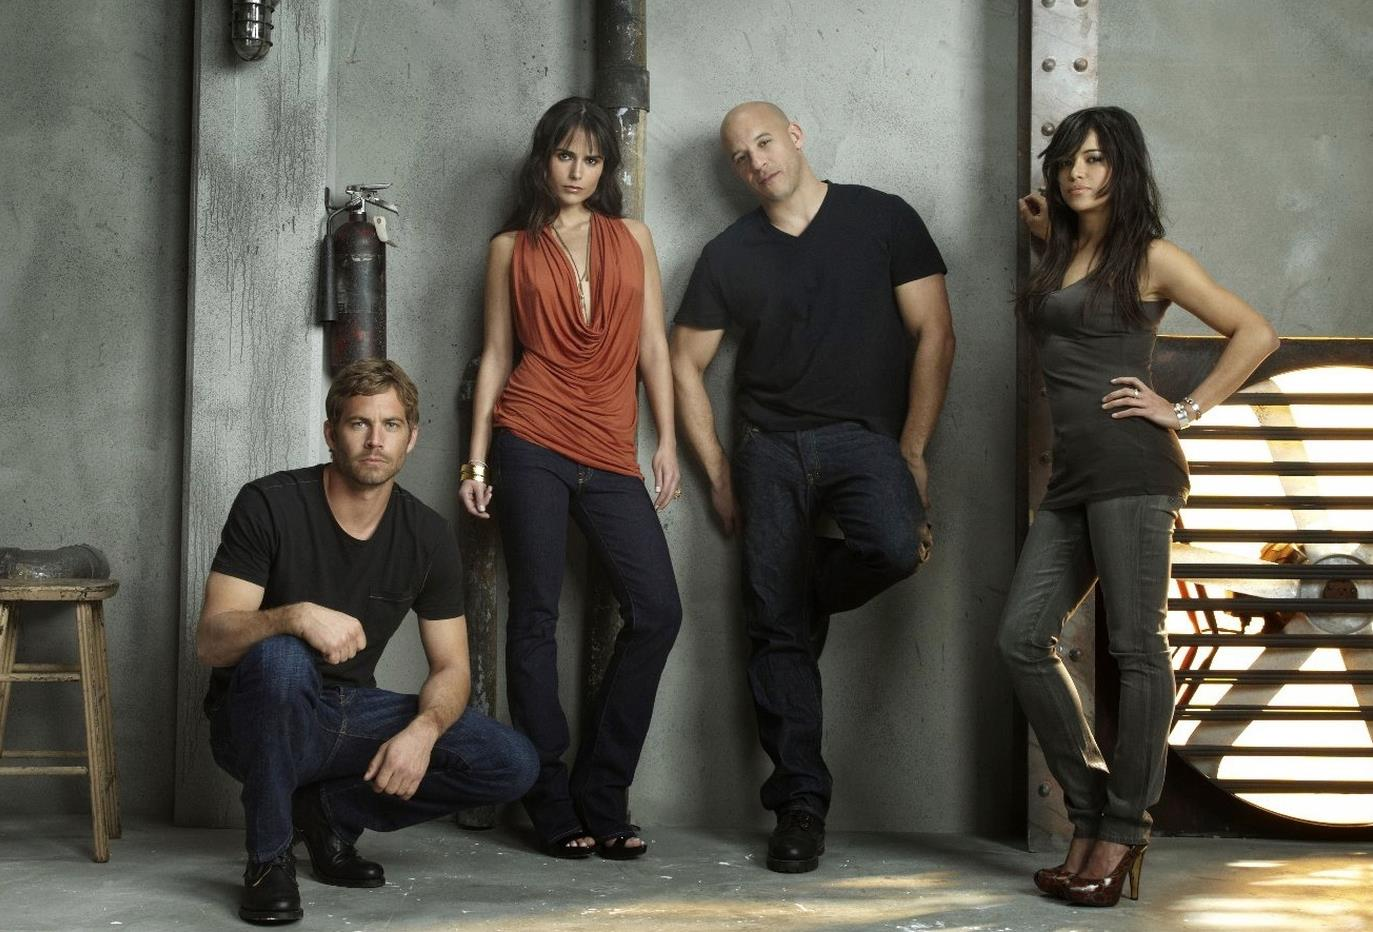 Fast And Furious 7 Wallpaper Backgroundjpg 1373x932